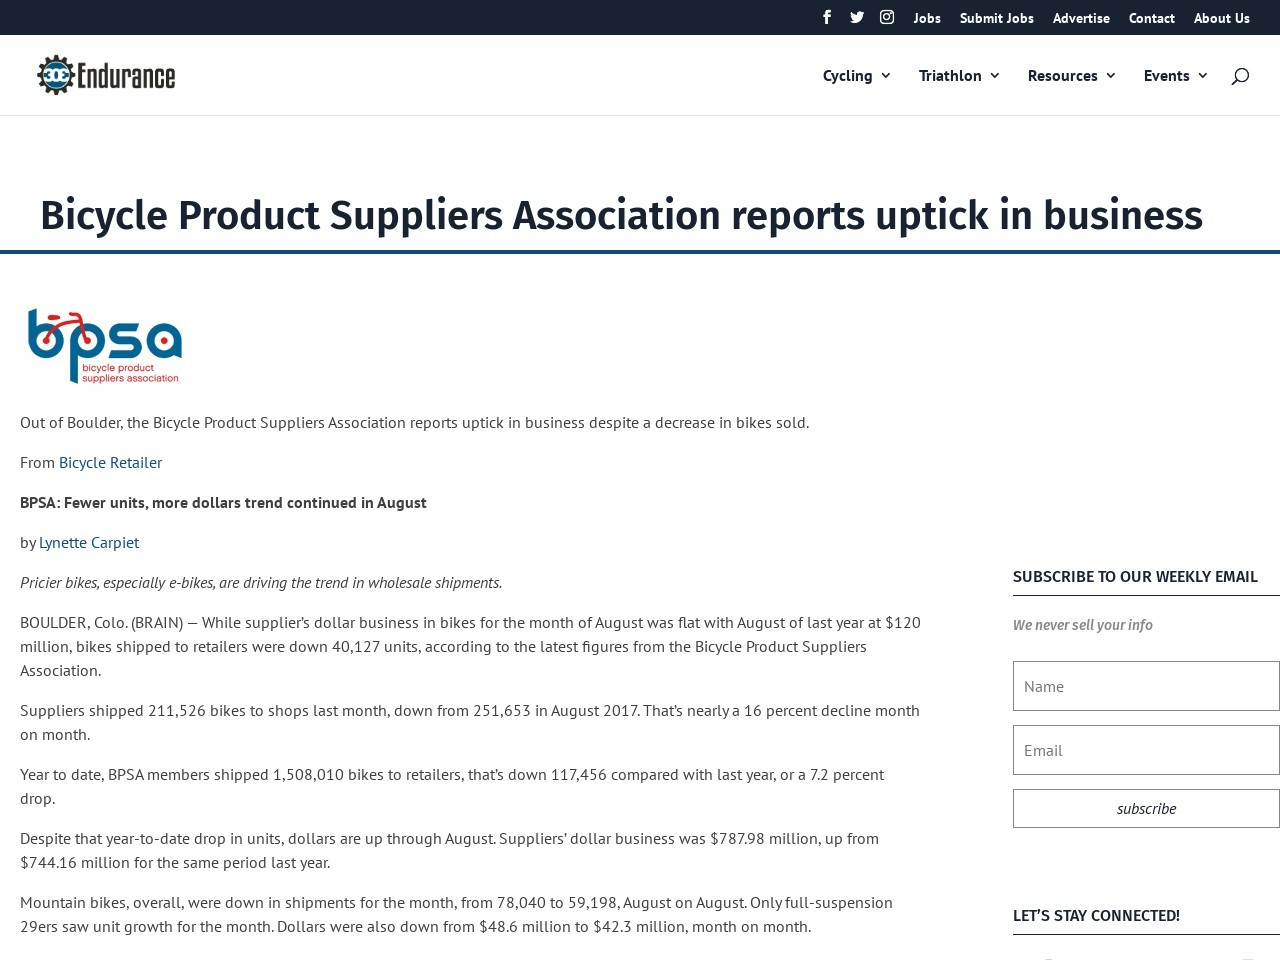 Bicycle Product Suppliers Association reports uptick in business